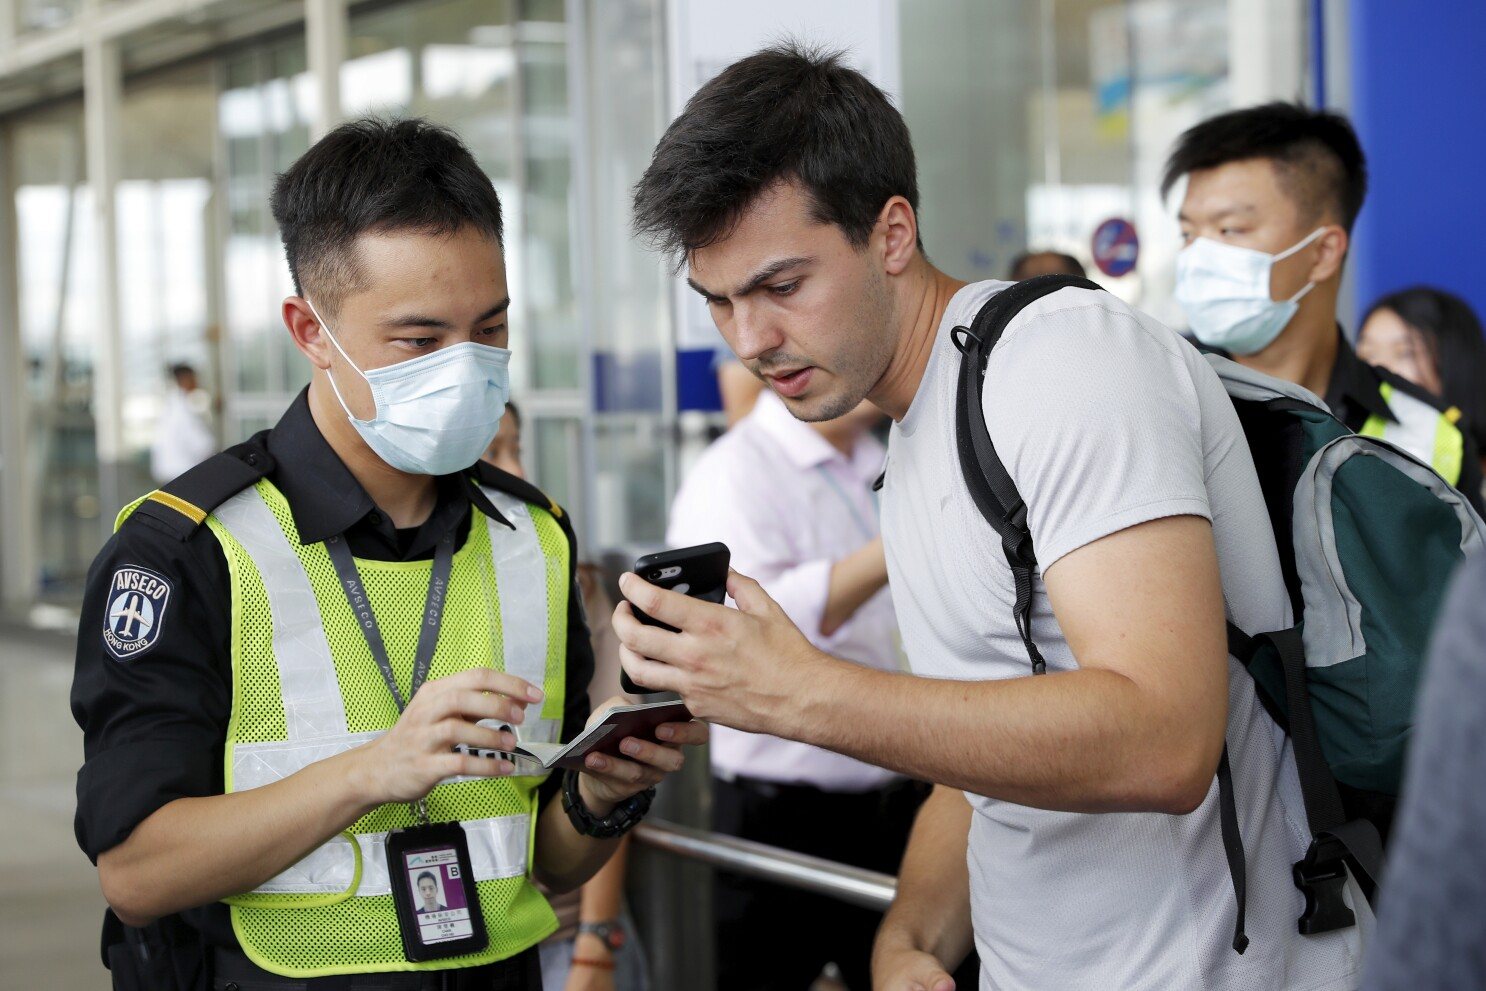 How travelers can stay safe during times of civil unrest